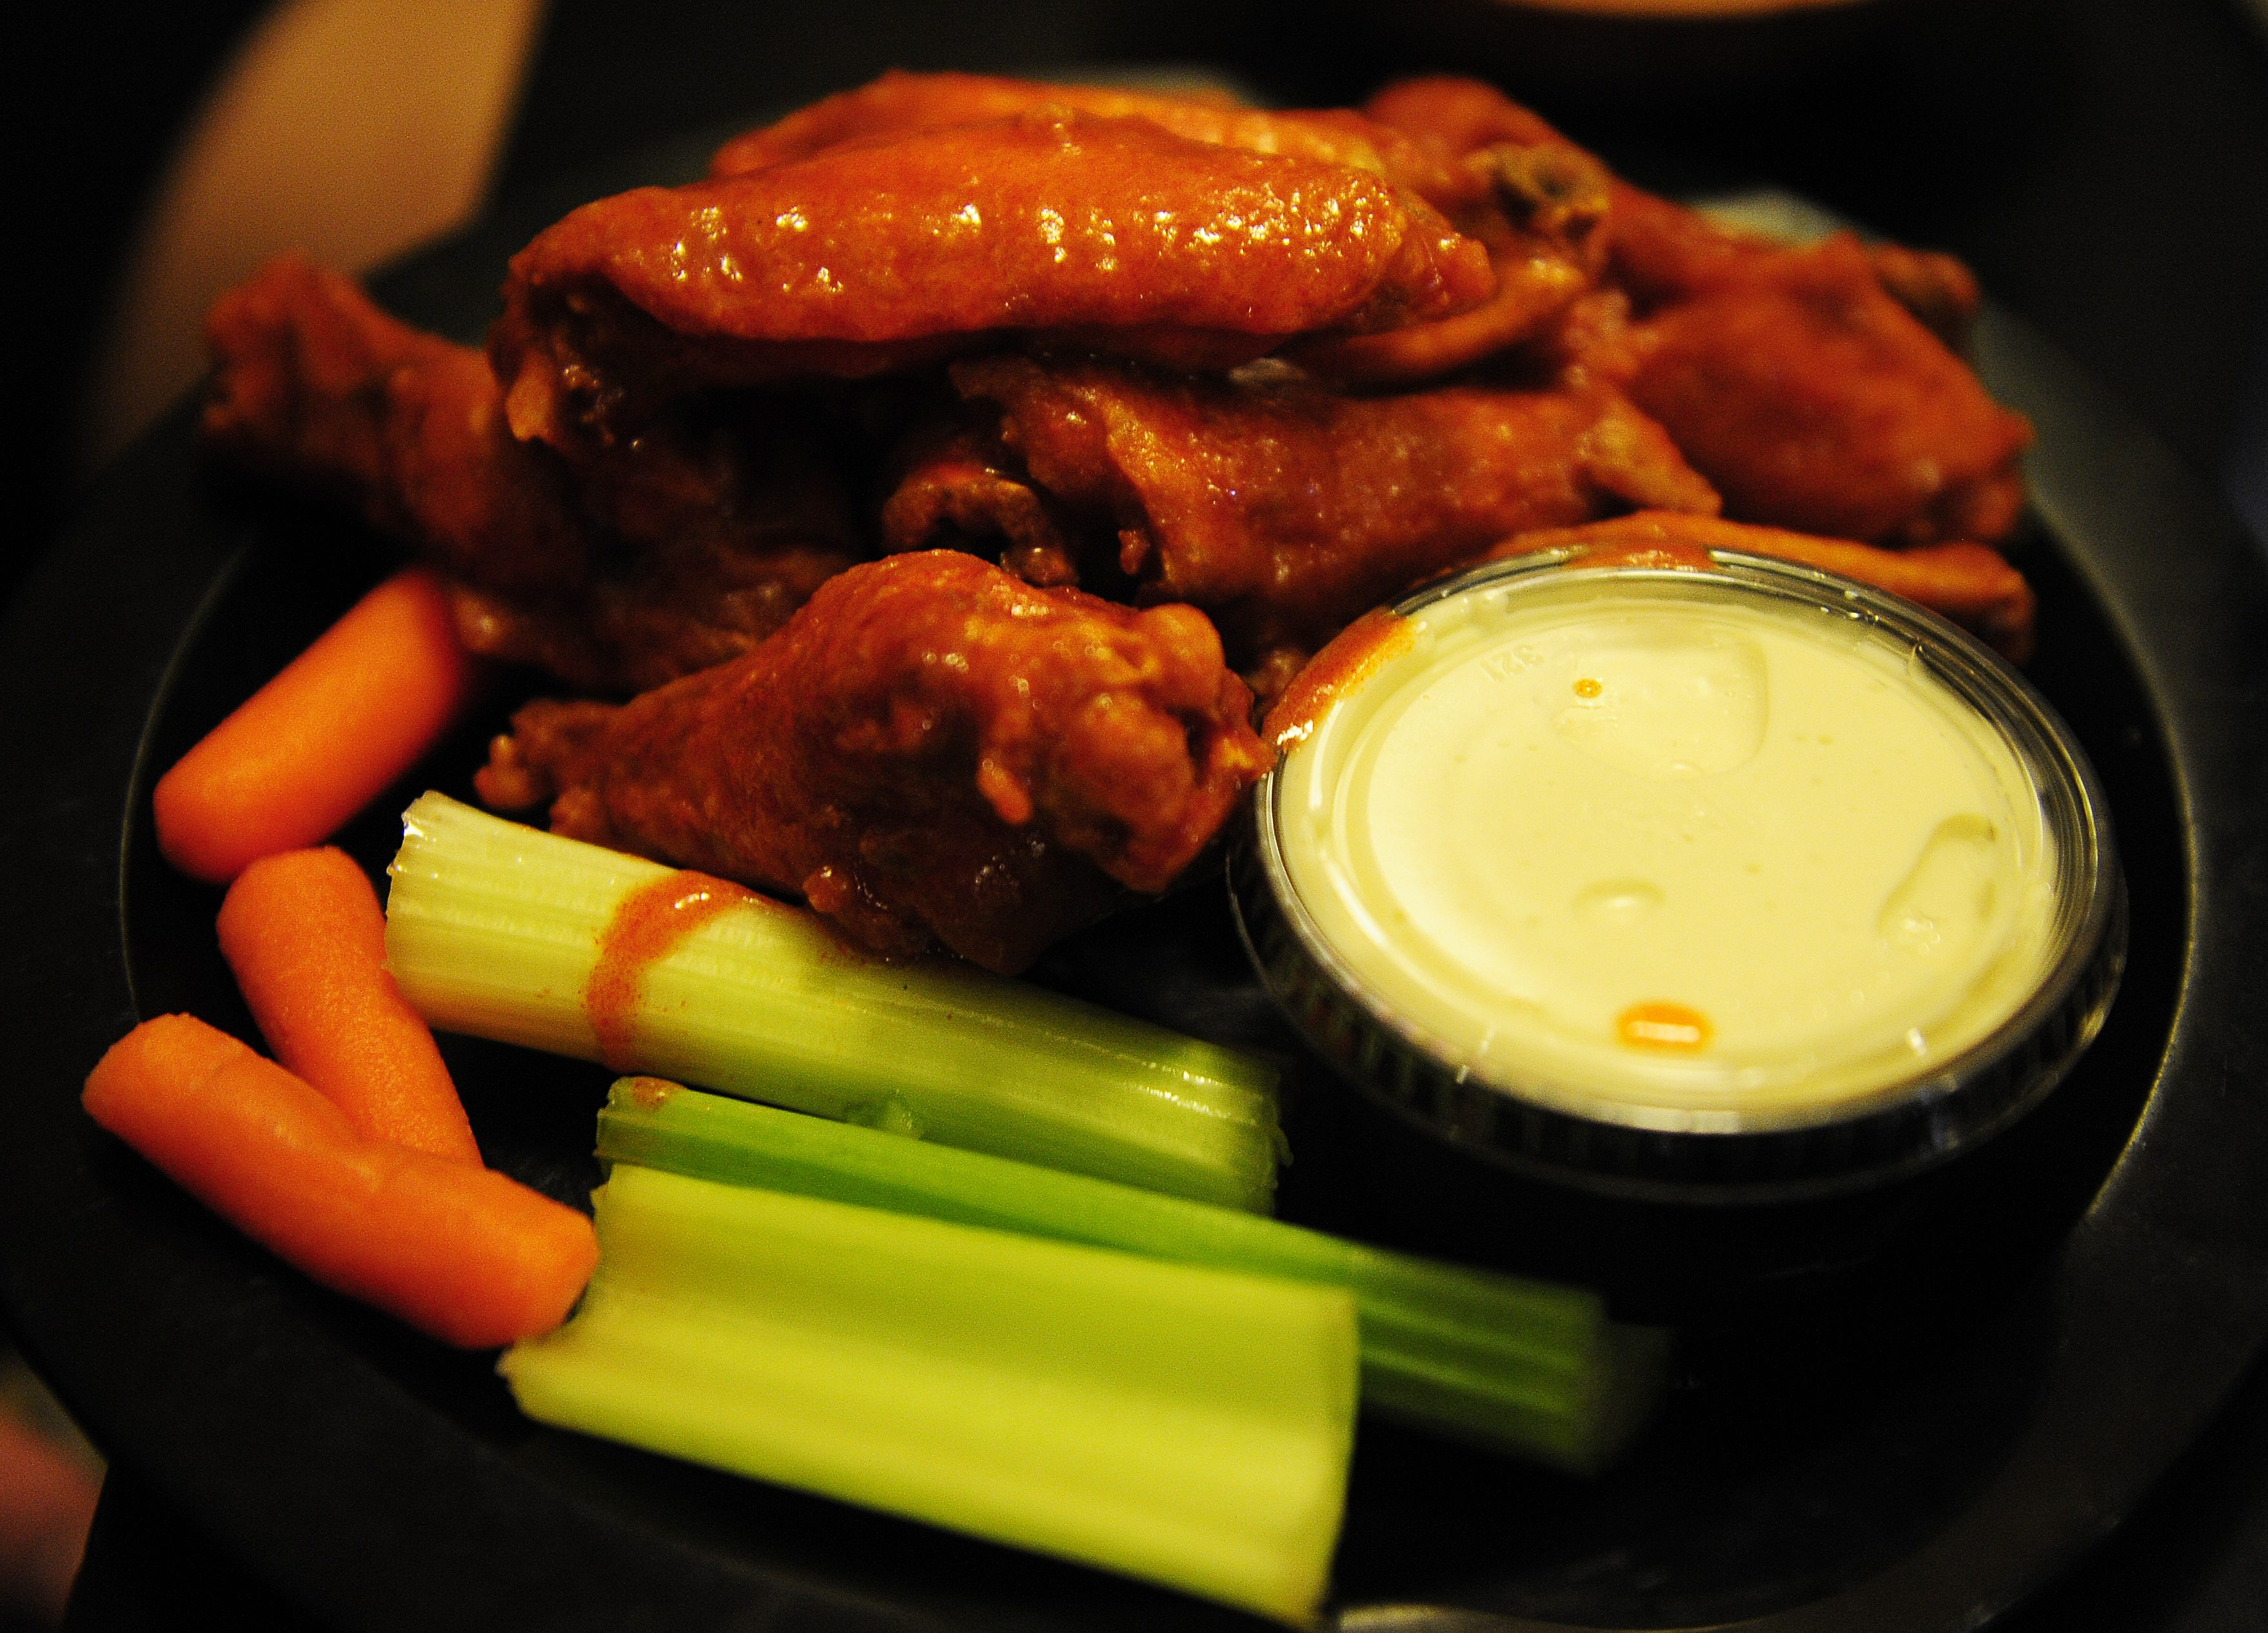 Duff's chicken wings made the Top 10 of 2015 food eaten by Great American Food Bites. (Buffalo News file photo)